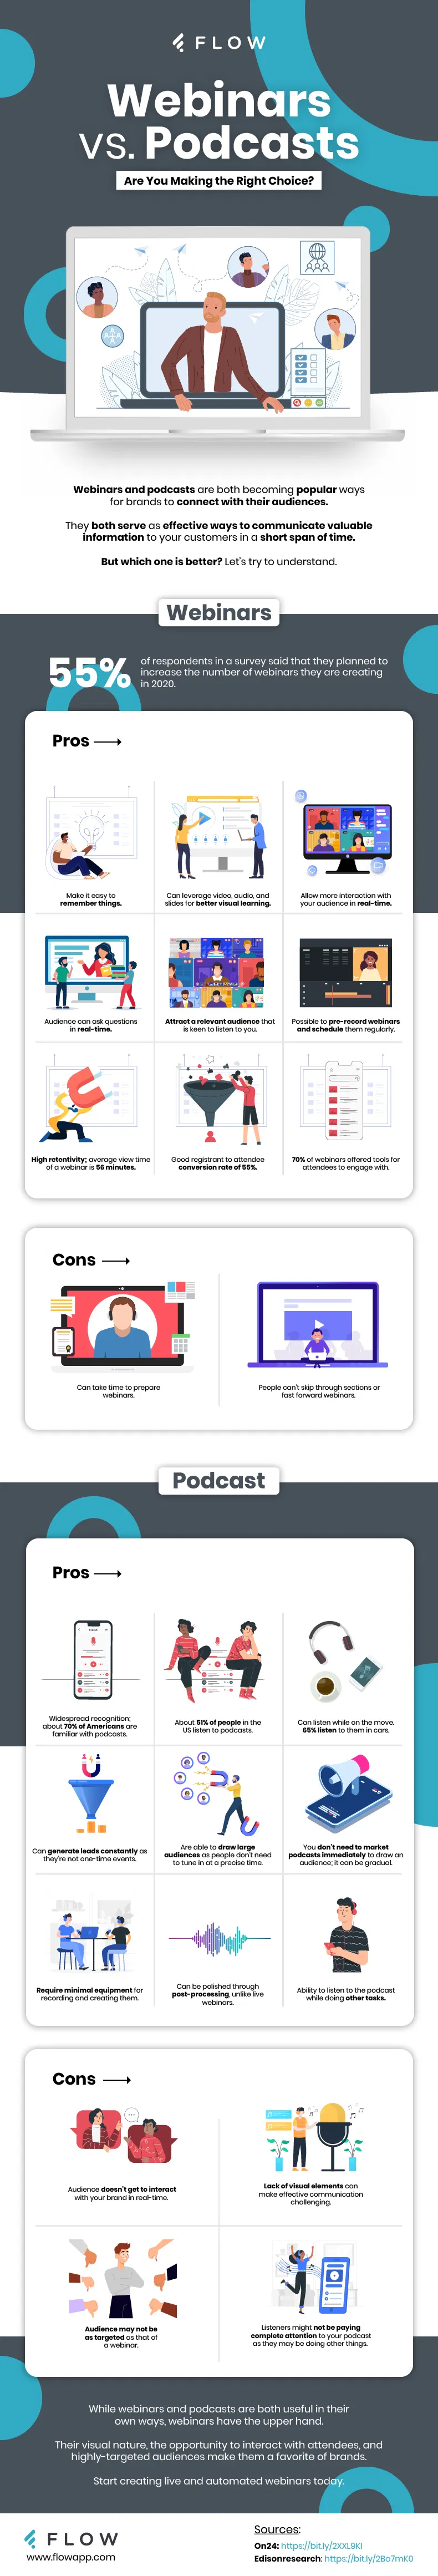 Advertising-Infographics-The-Pros-and-Cons-of-Webinars-and Advertising Infographics : The Pros and Cons of Webinars and Podcasts [Infographic]